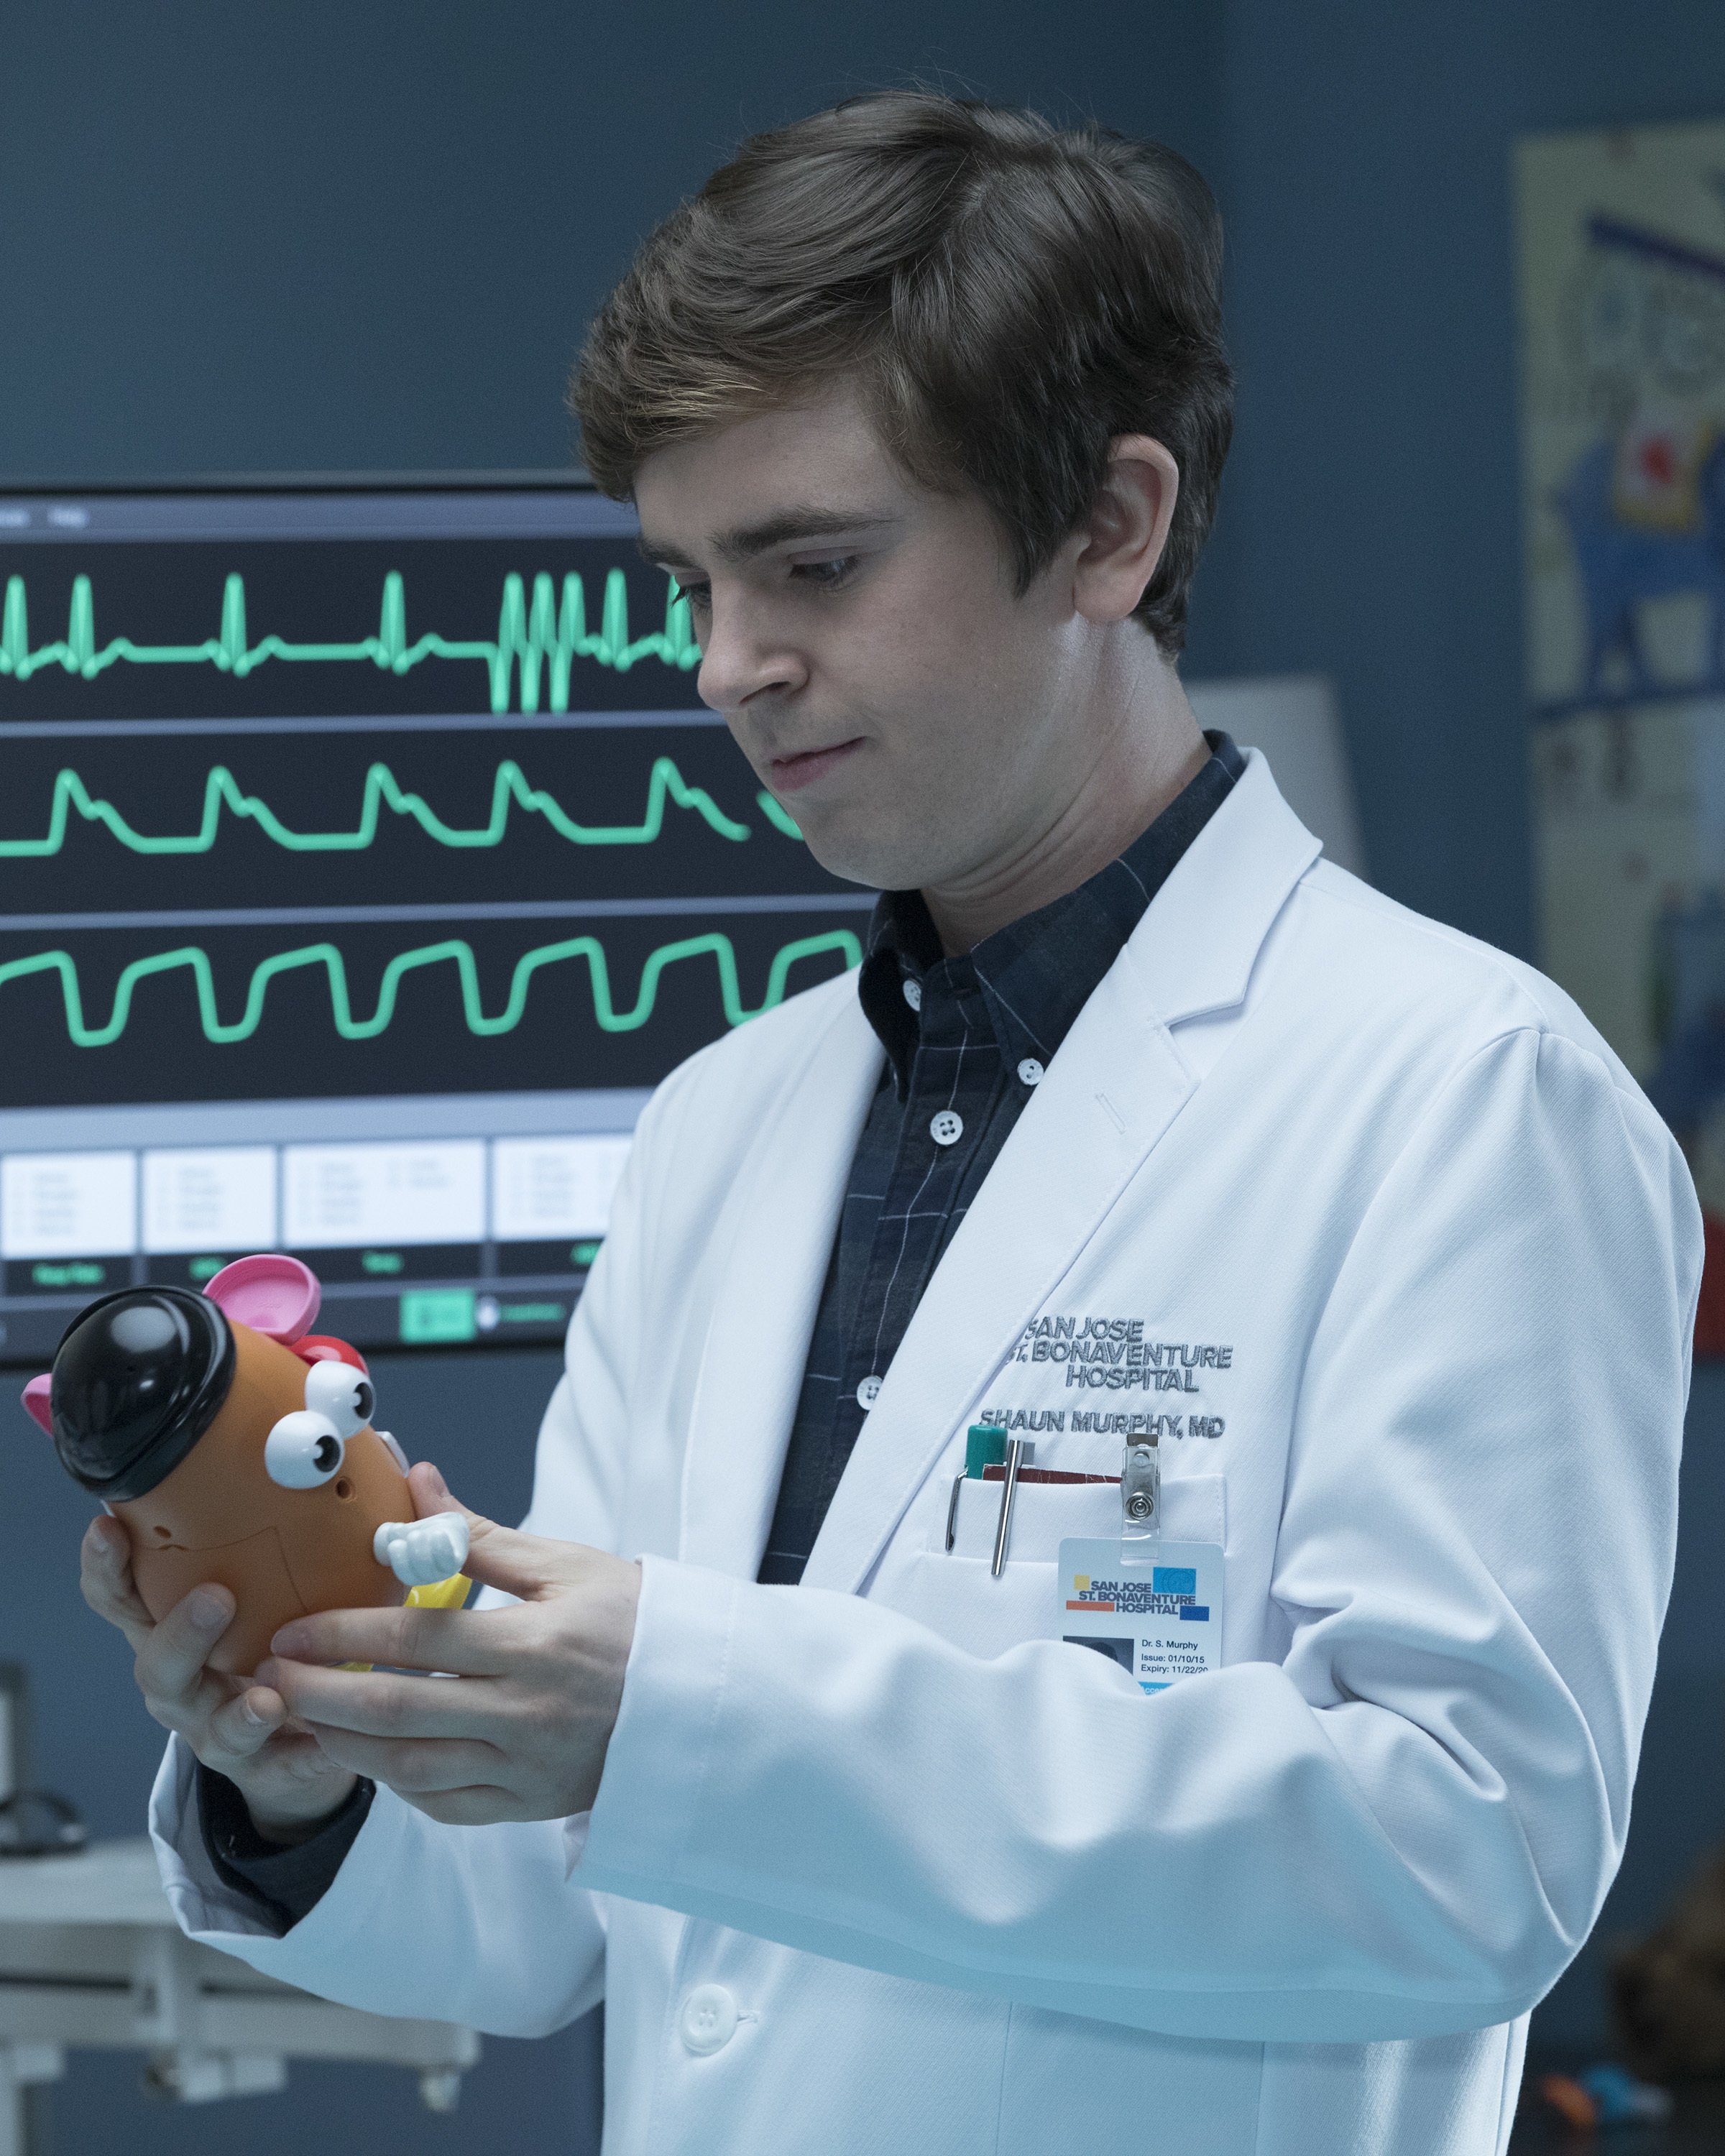 The Good Doctor Episode 1